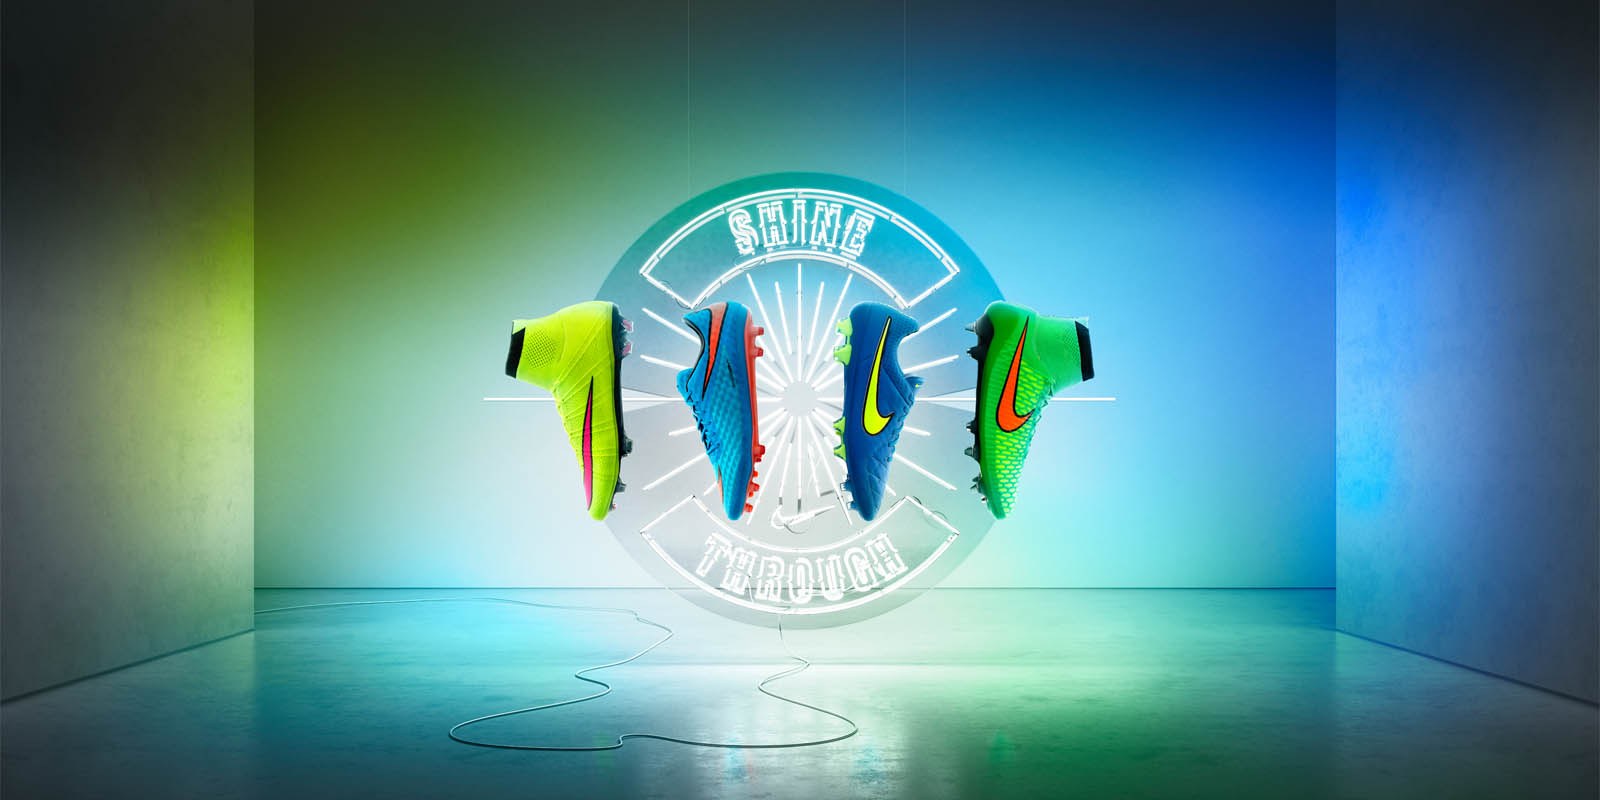 Boot design by nike - Boot Design By Nike 29